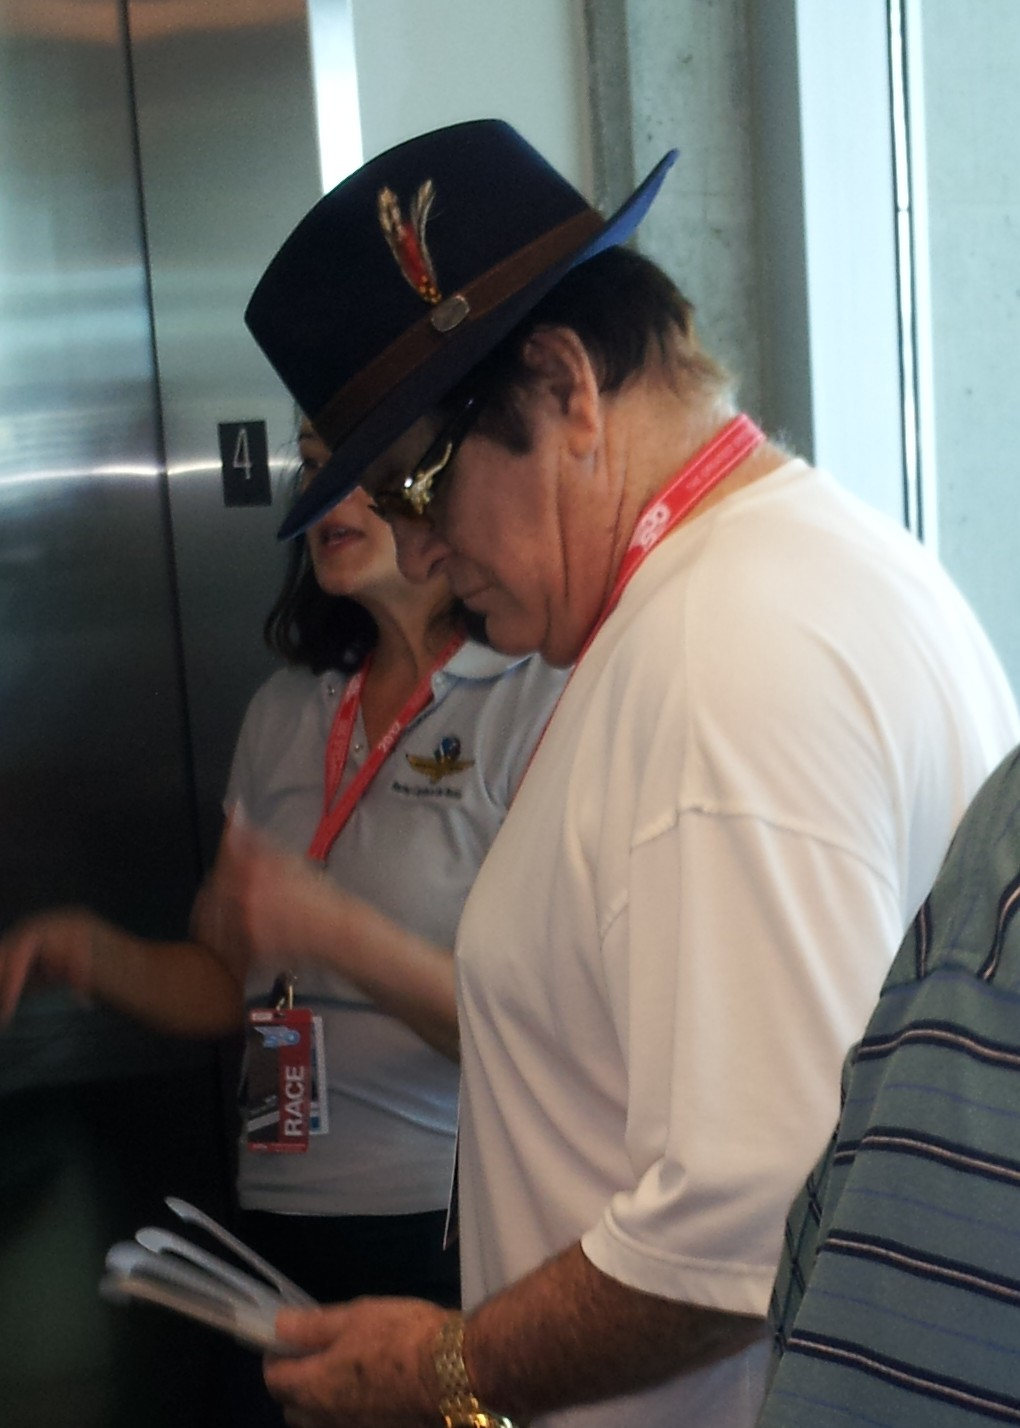 Pete Rose attends the Indianapolis 500. He's seen here waiting to enter the media center elevator.